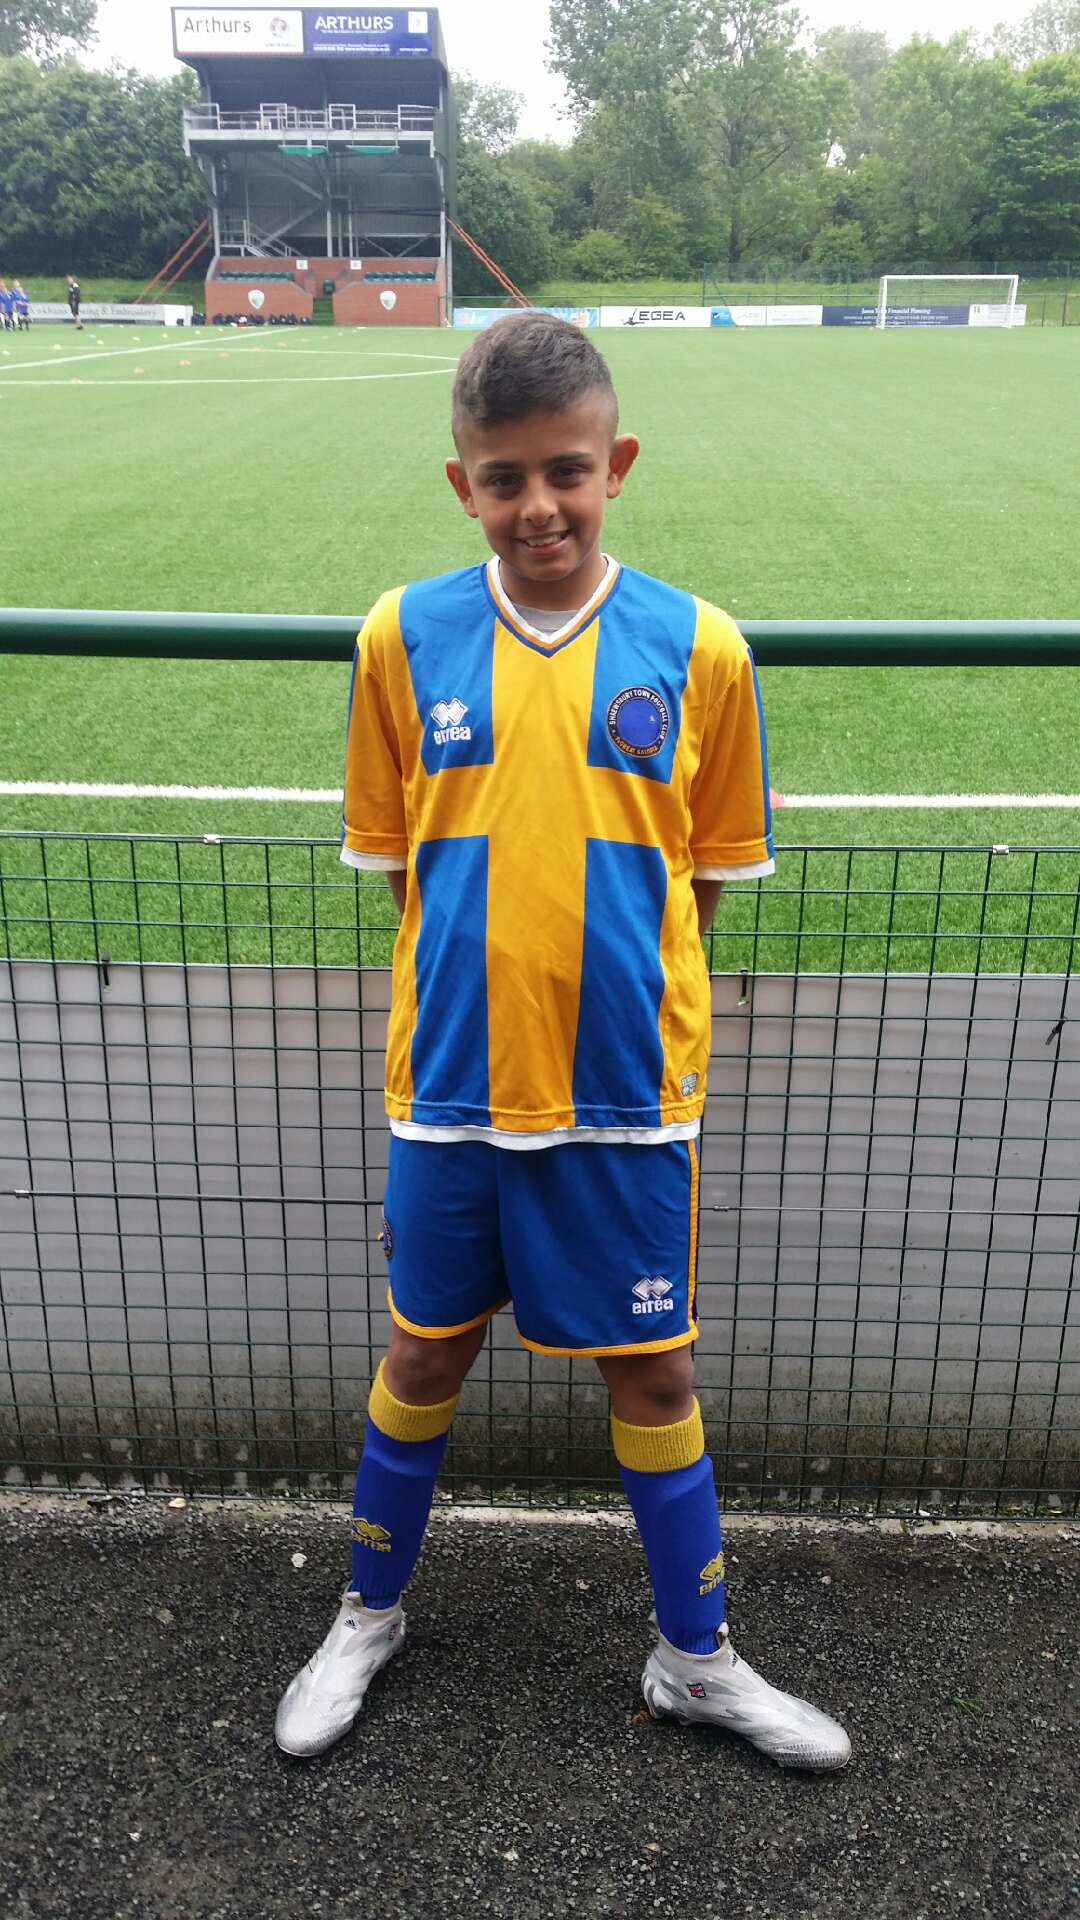 CALUM PRIEST - AGE: 12CLUB: SHREWSBURY FCPOSITION: MIDFIELDSTARTED IPDA: 12TH APRIL 2016SIGNED FOR ACADEMY: 12TH MAY 2017